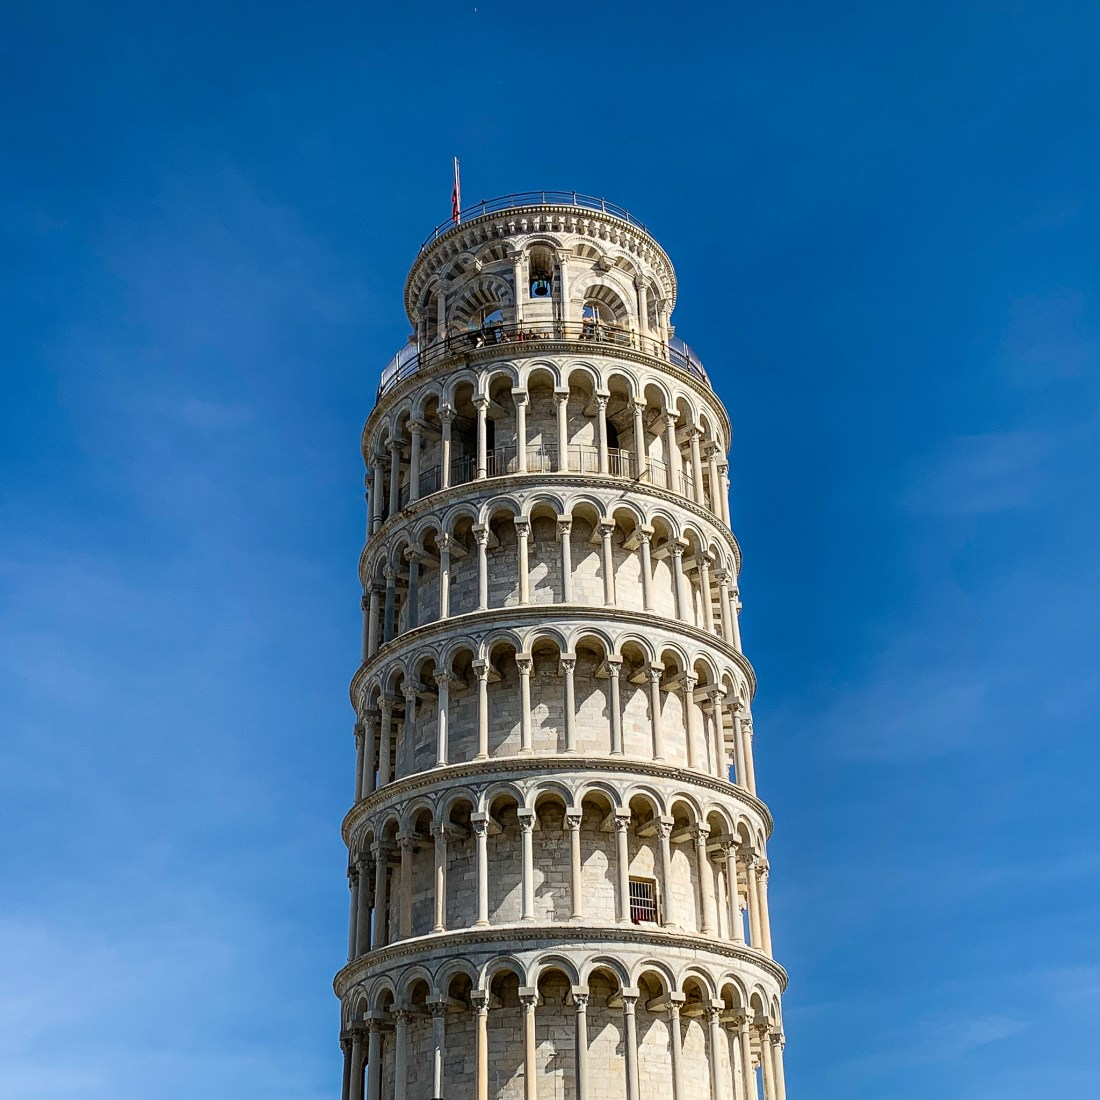 The Leaning Tower of Pisa against a blue sky